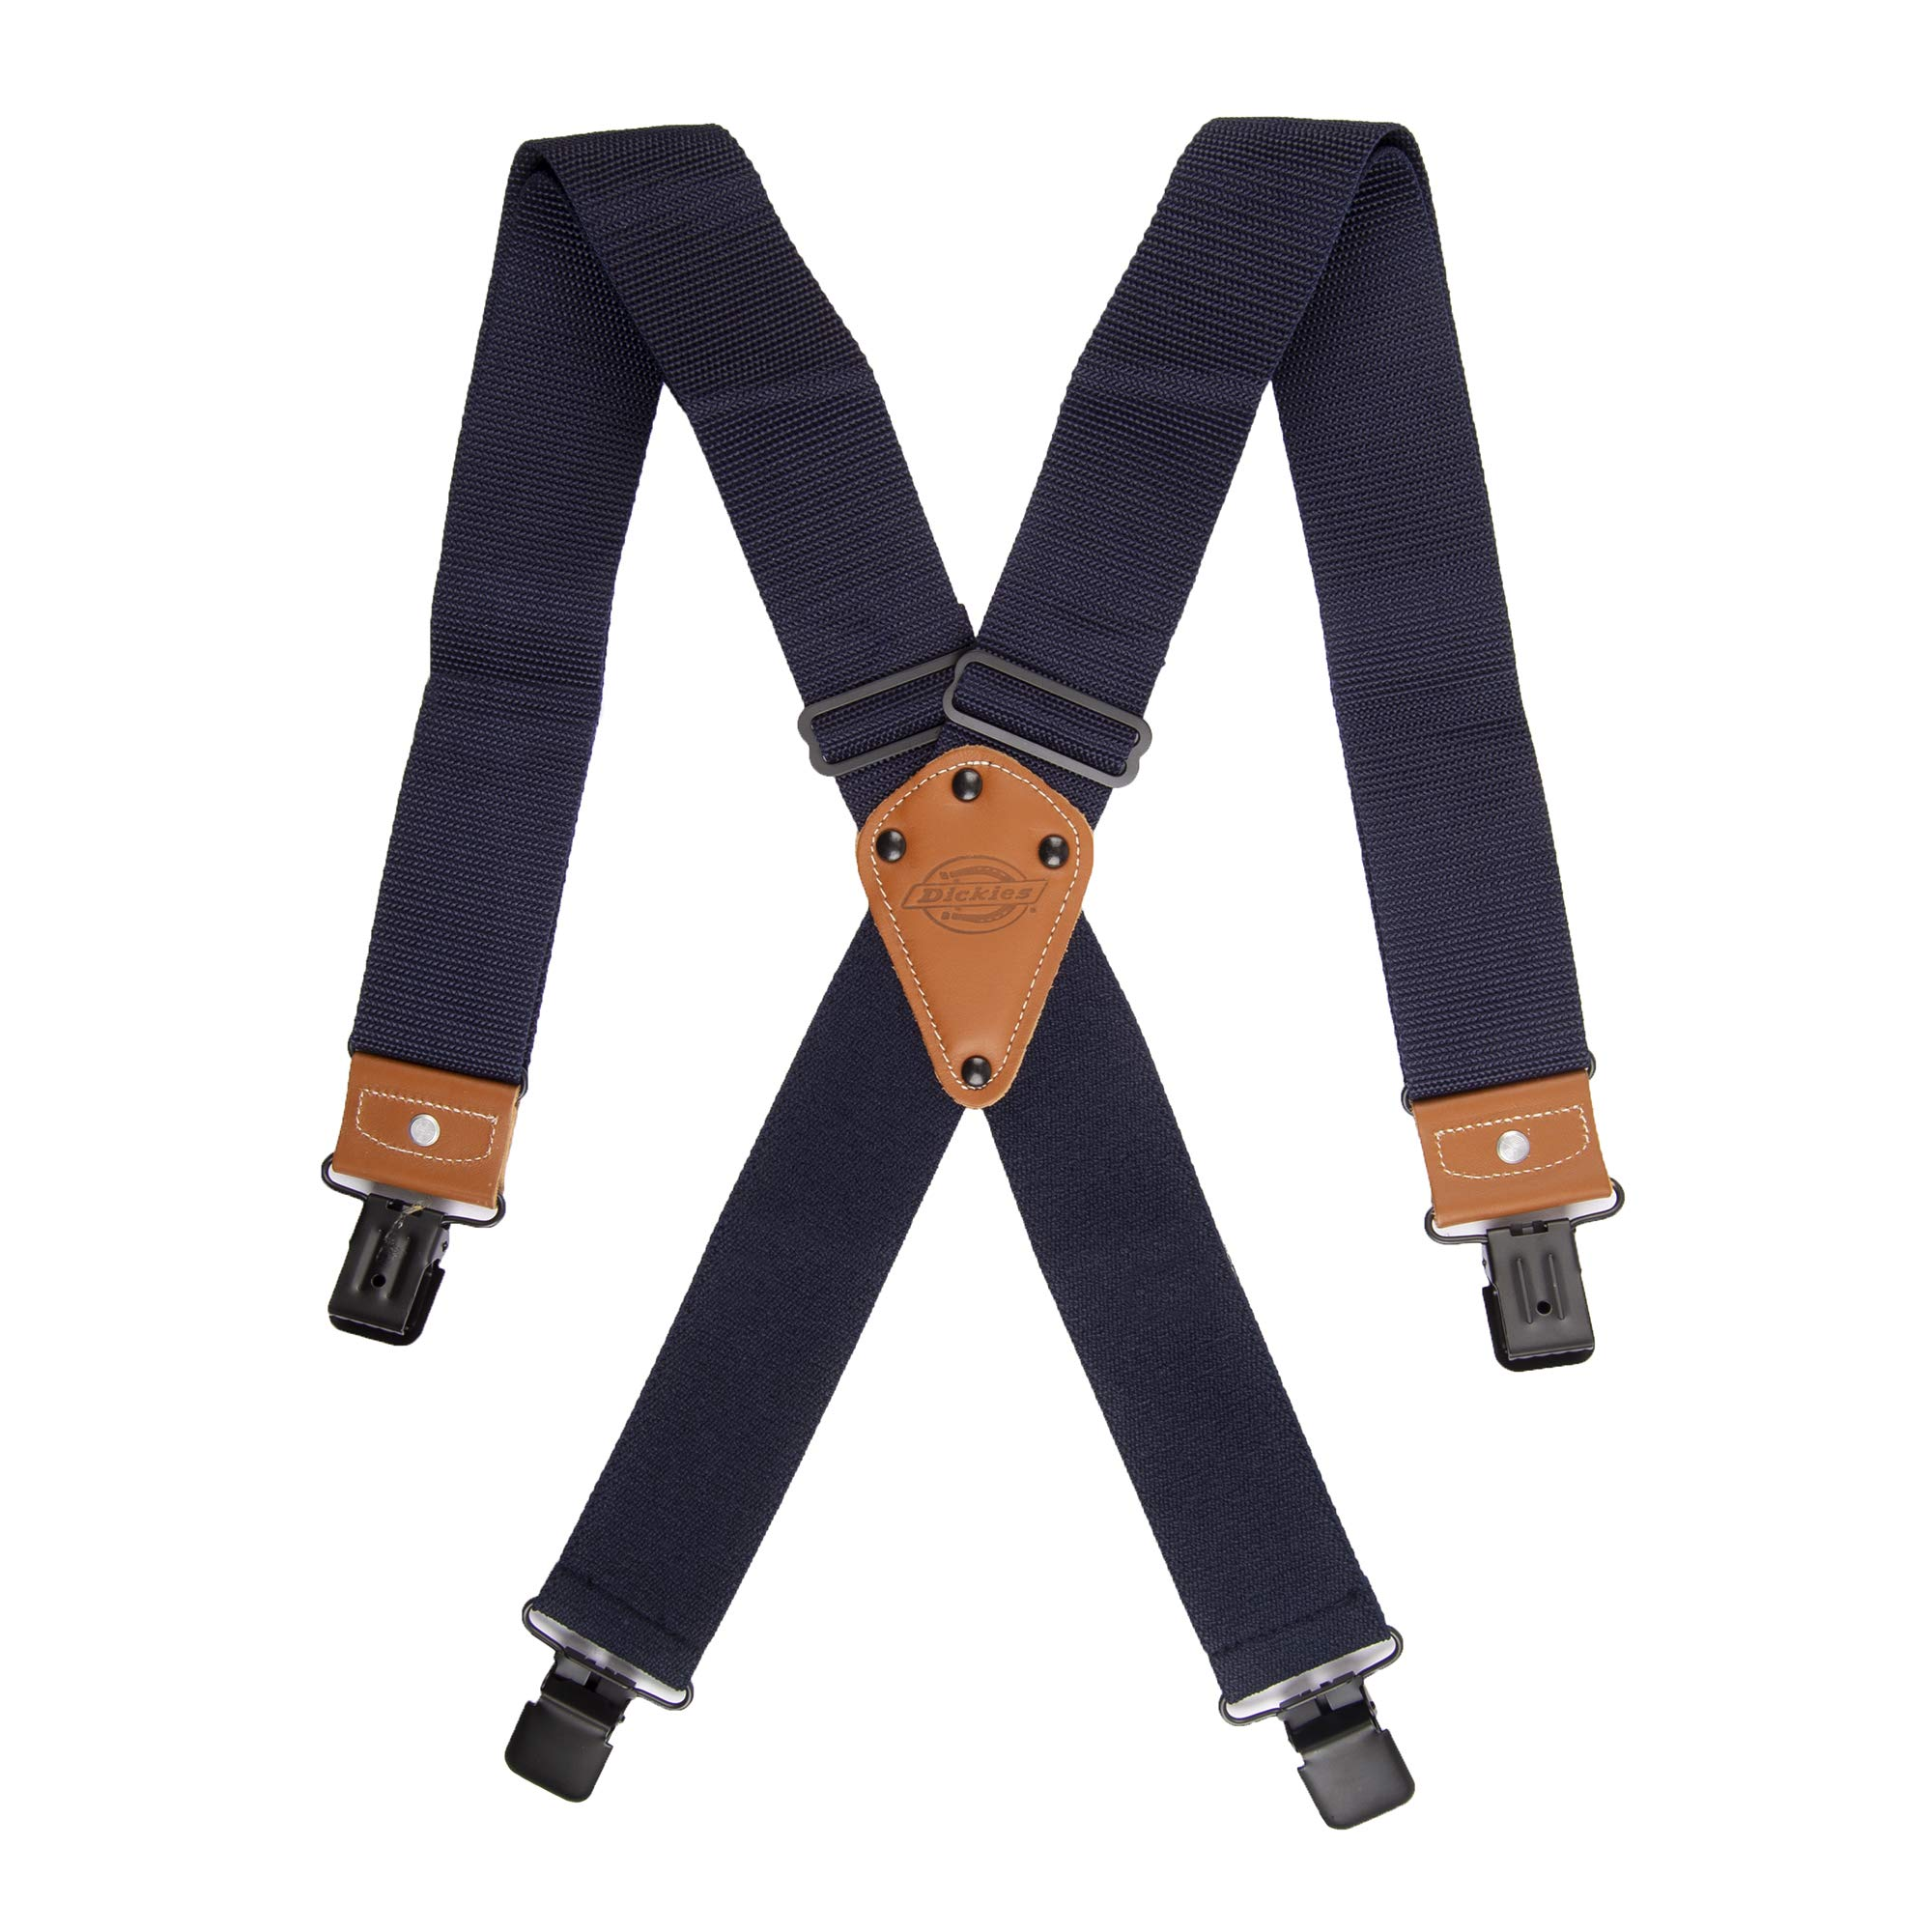 Dickies Industrial Strength Suspenders Adjustable